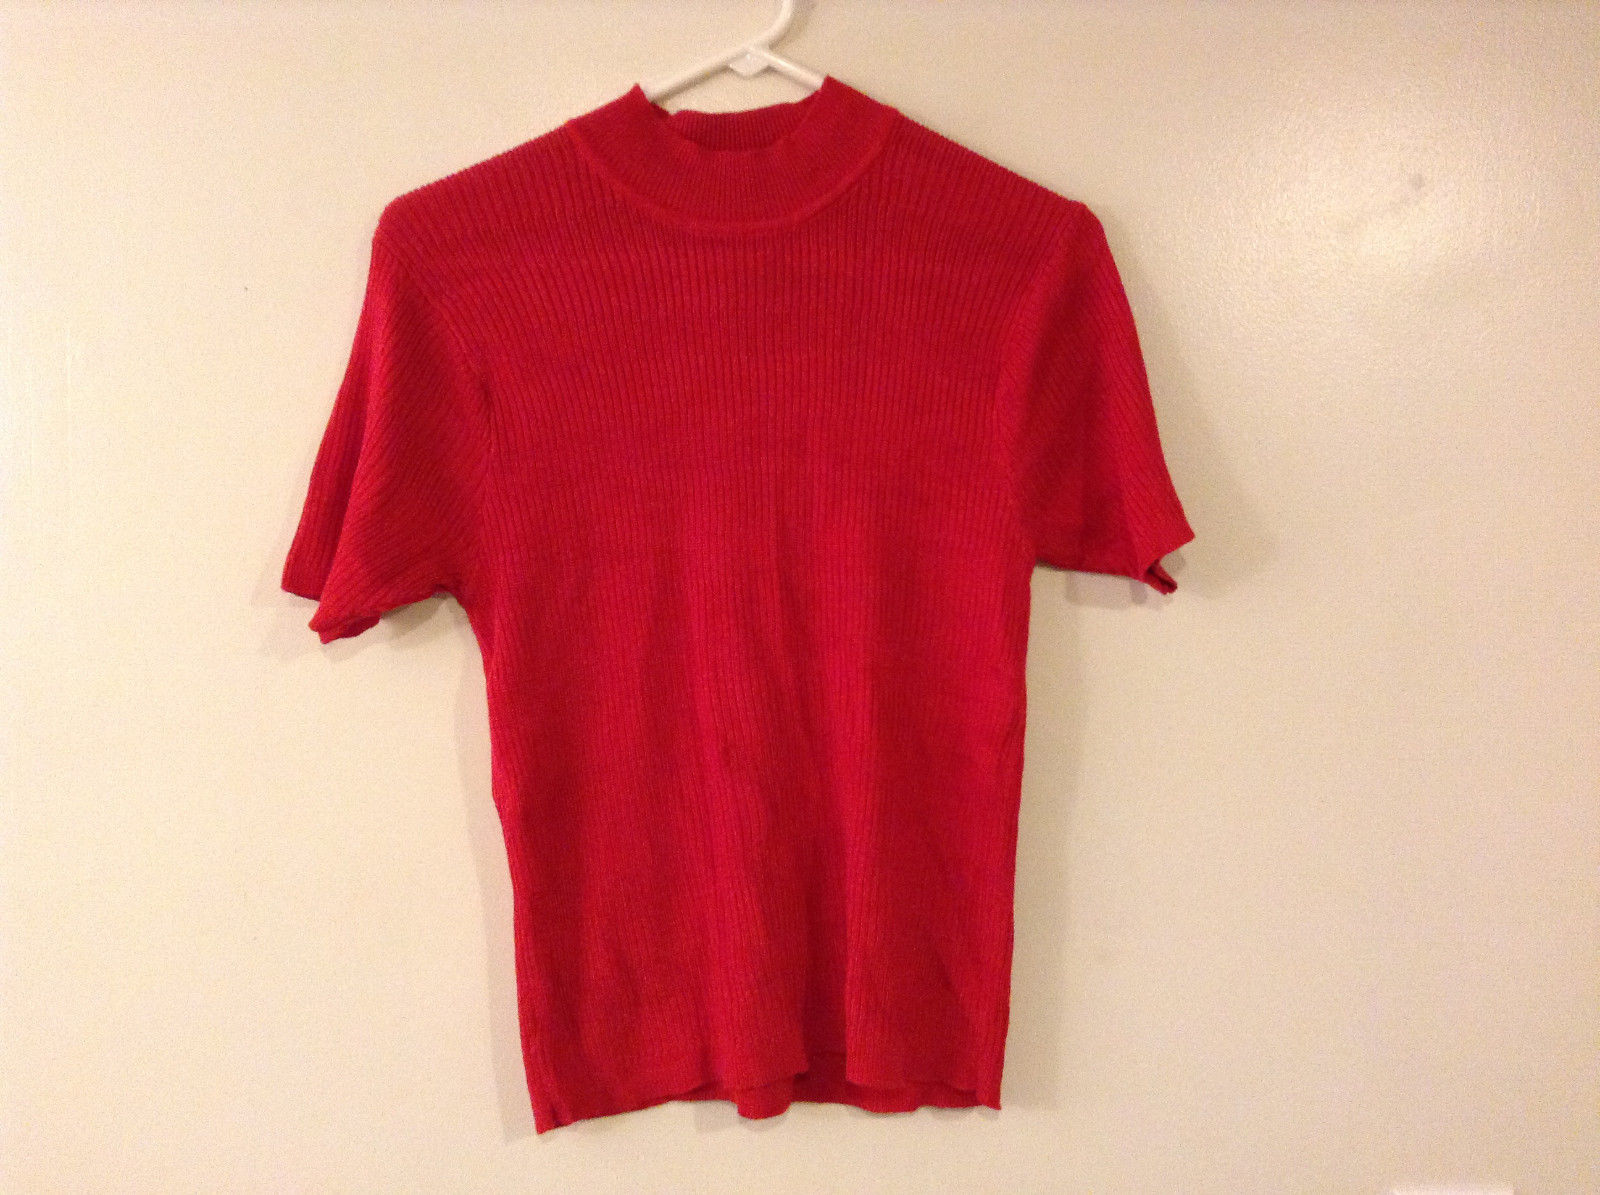 Norton McNaughton Women's Size S Ribbed Knit Top Short Sleeve Mock Neck True Red